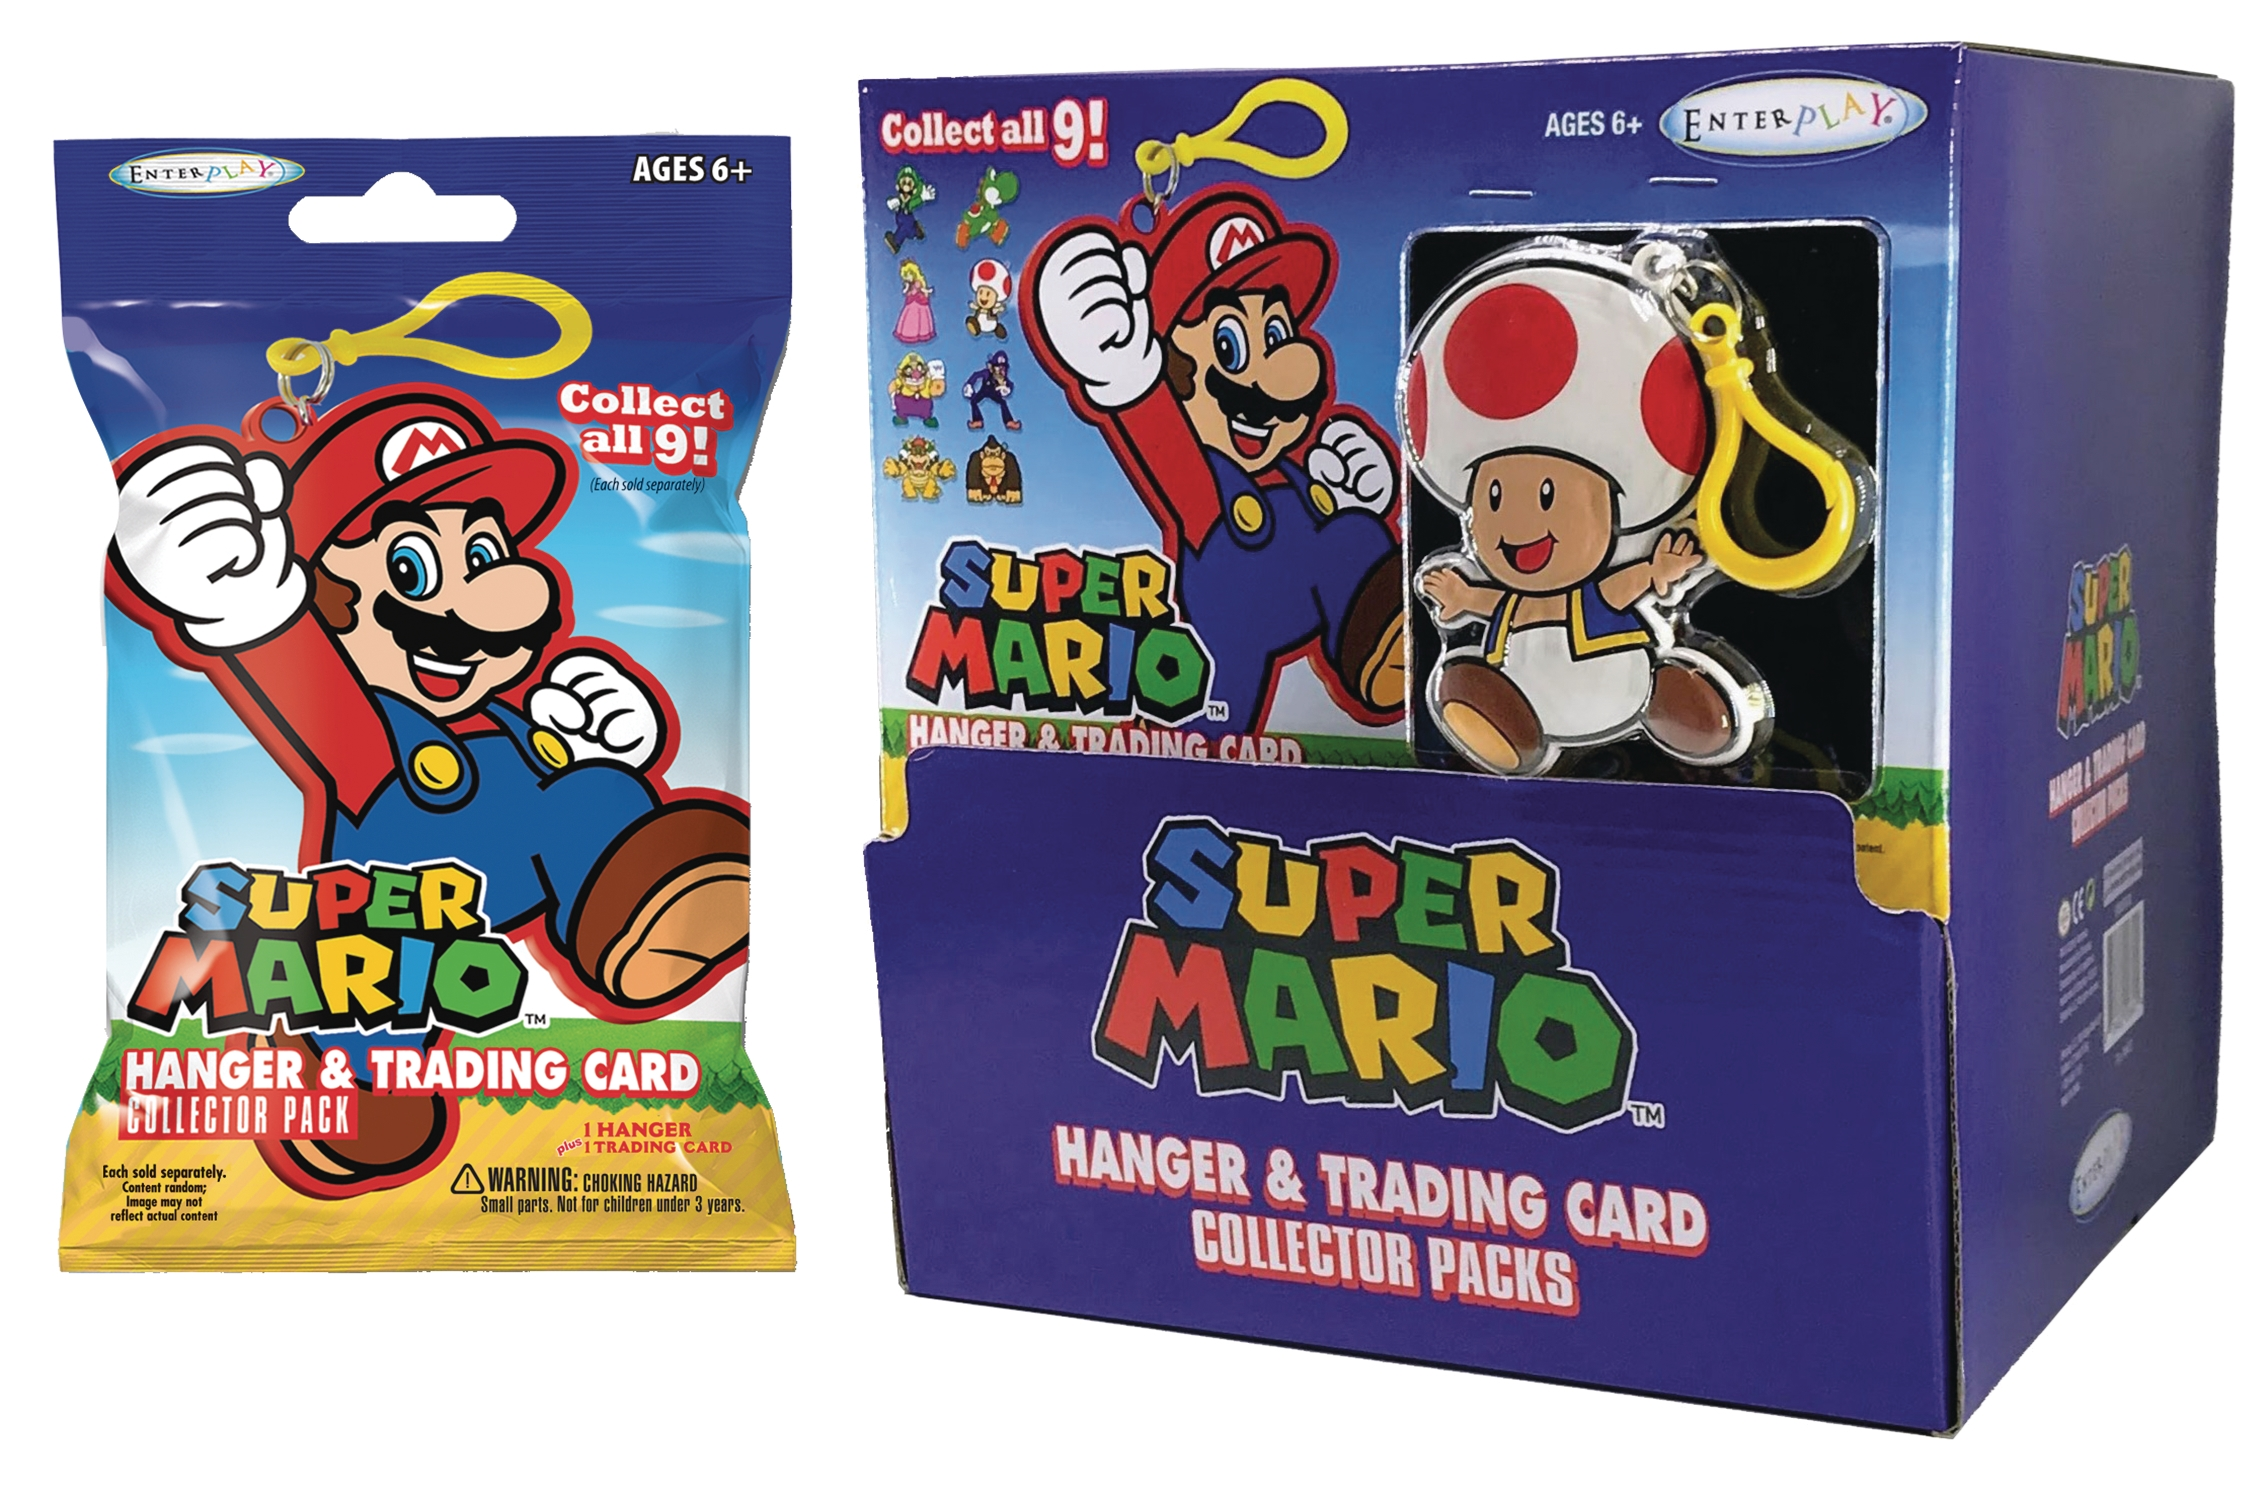 Super Mario Hangers with Trading Cards